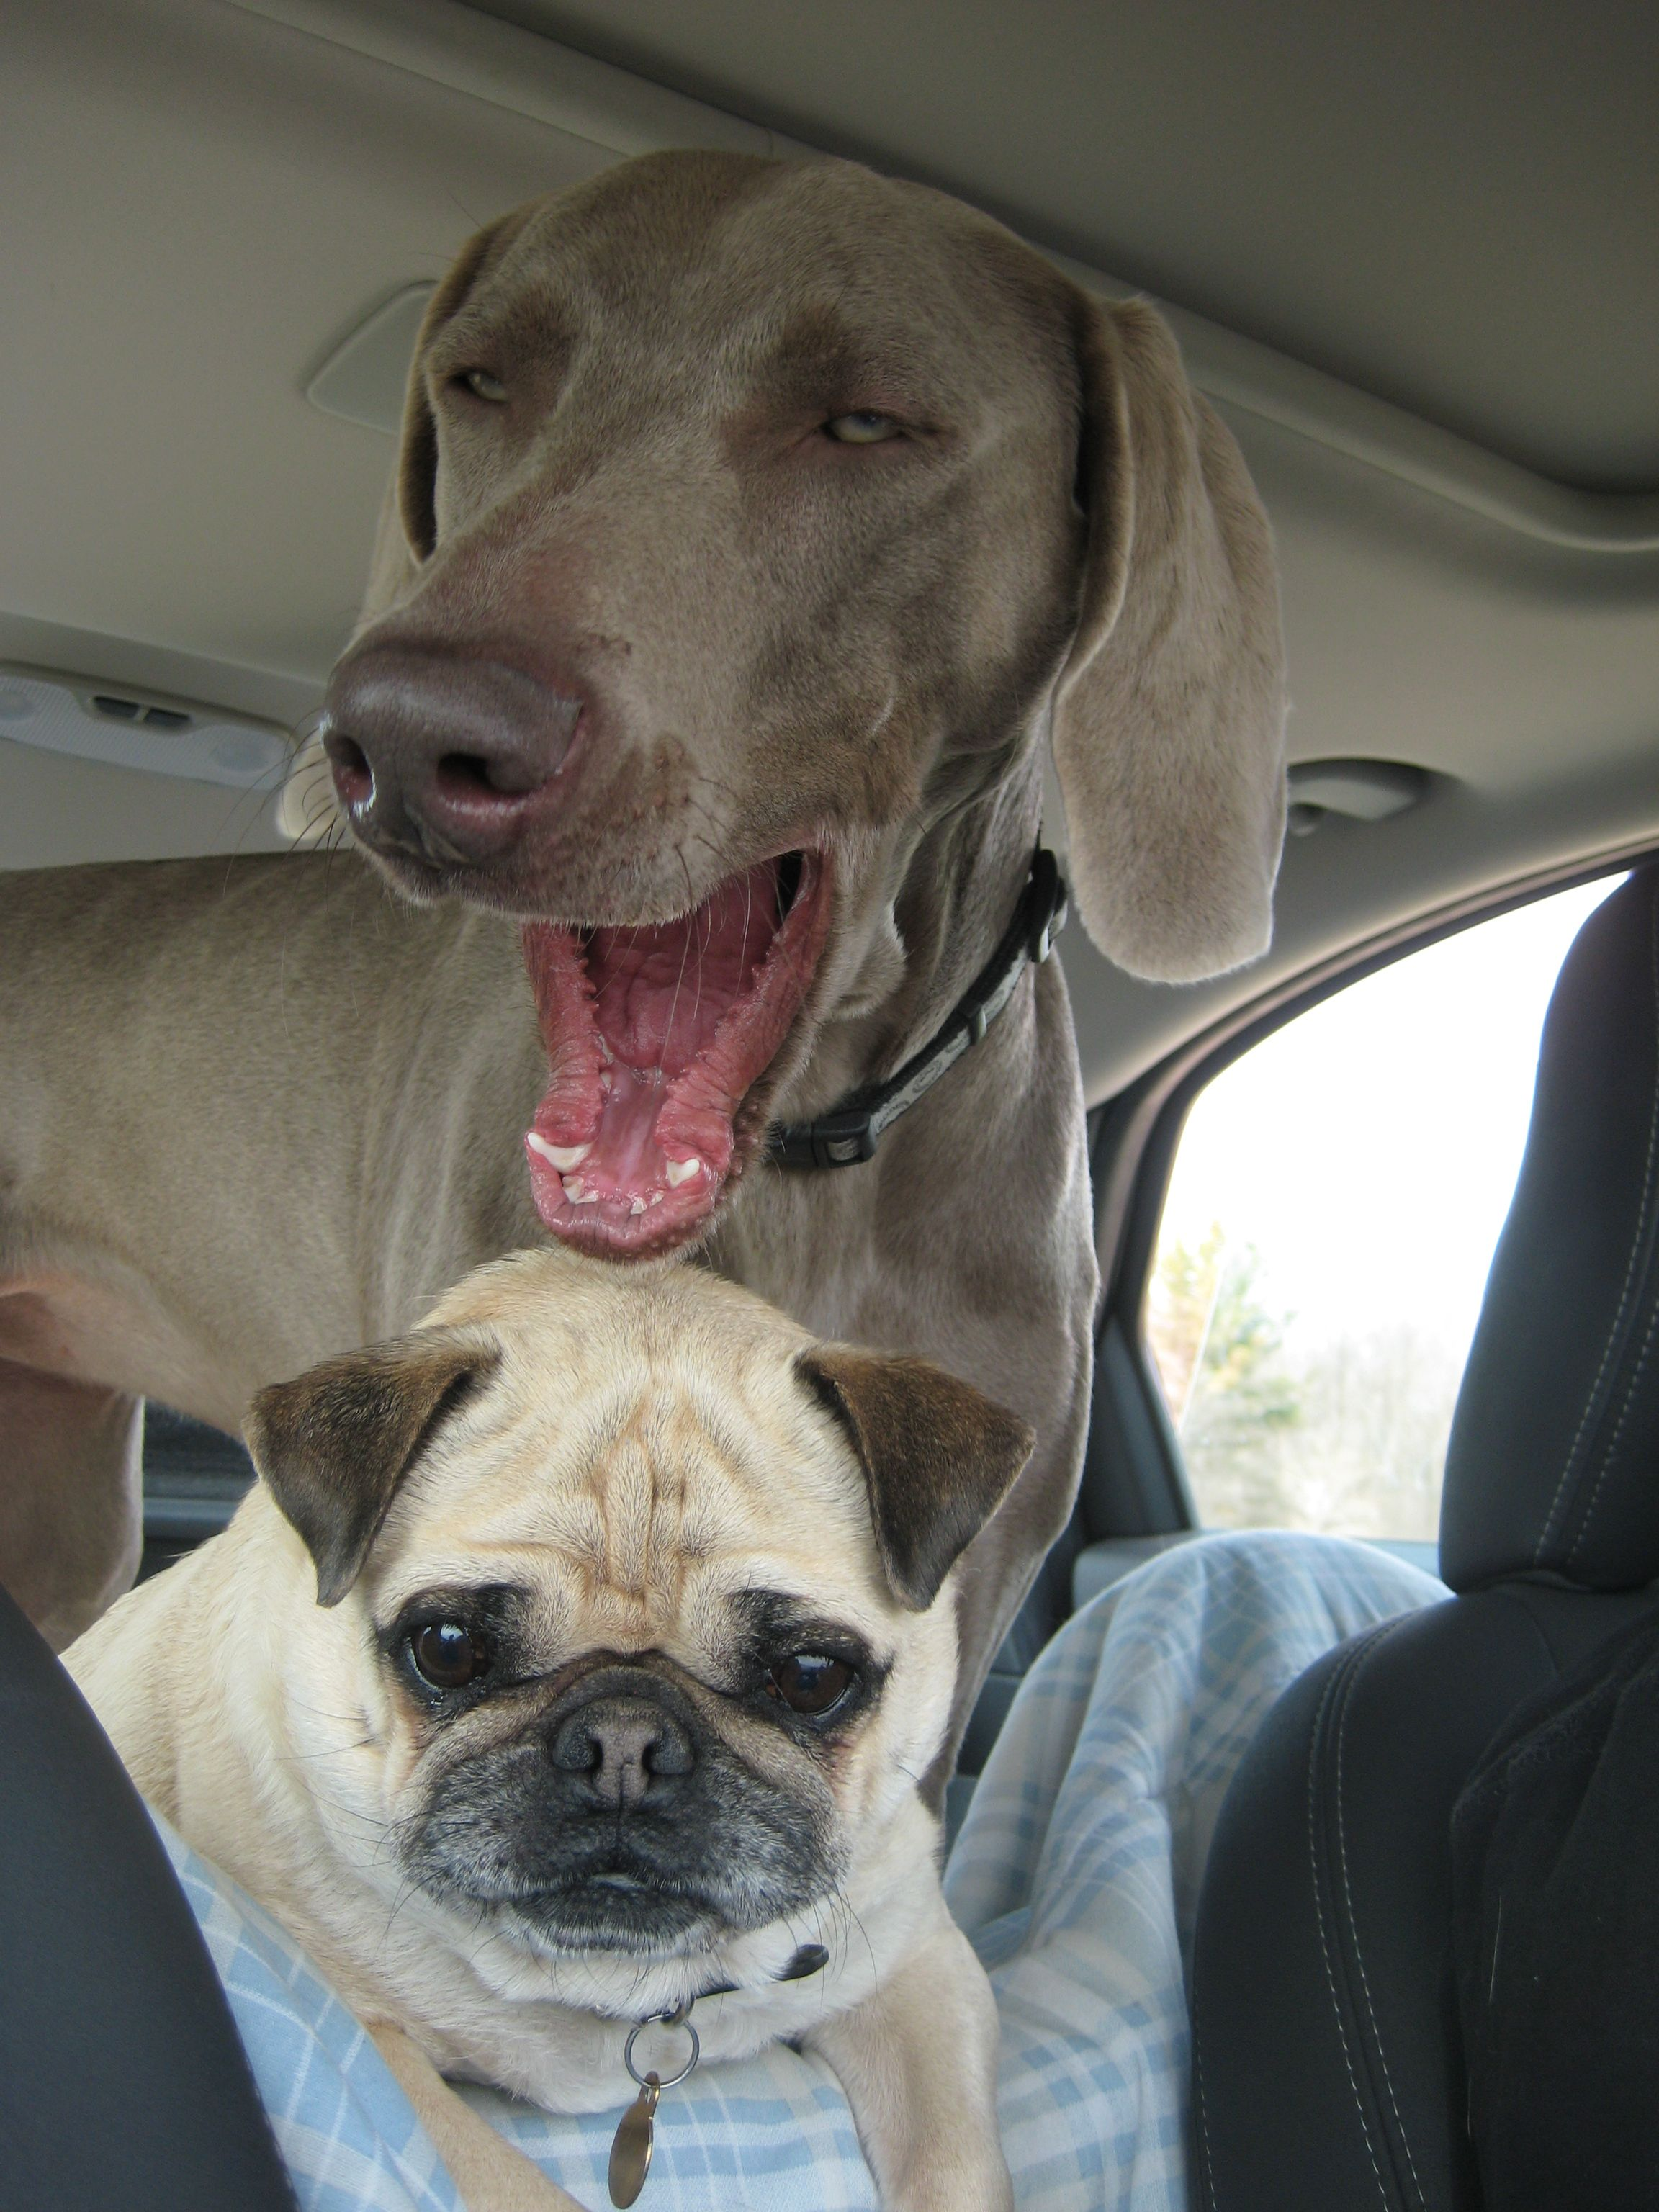 pug + weimaraner yawn. apparently they are contagious.